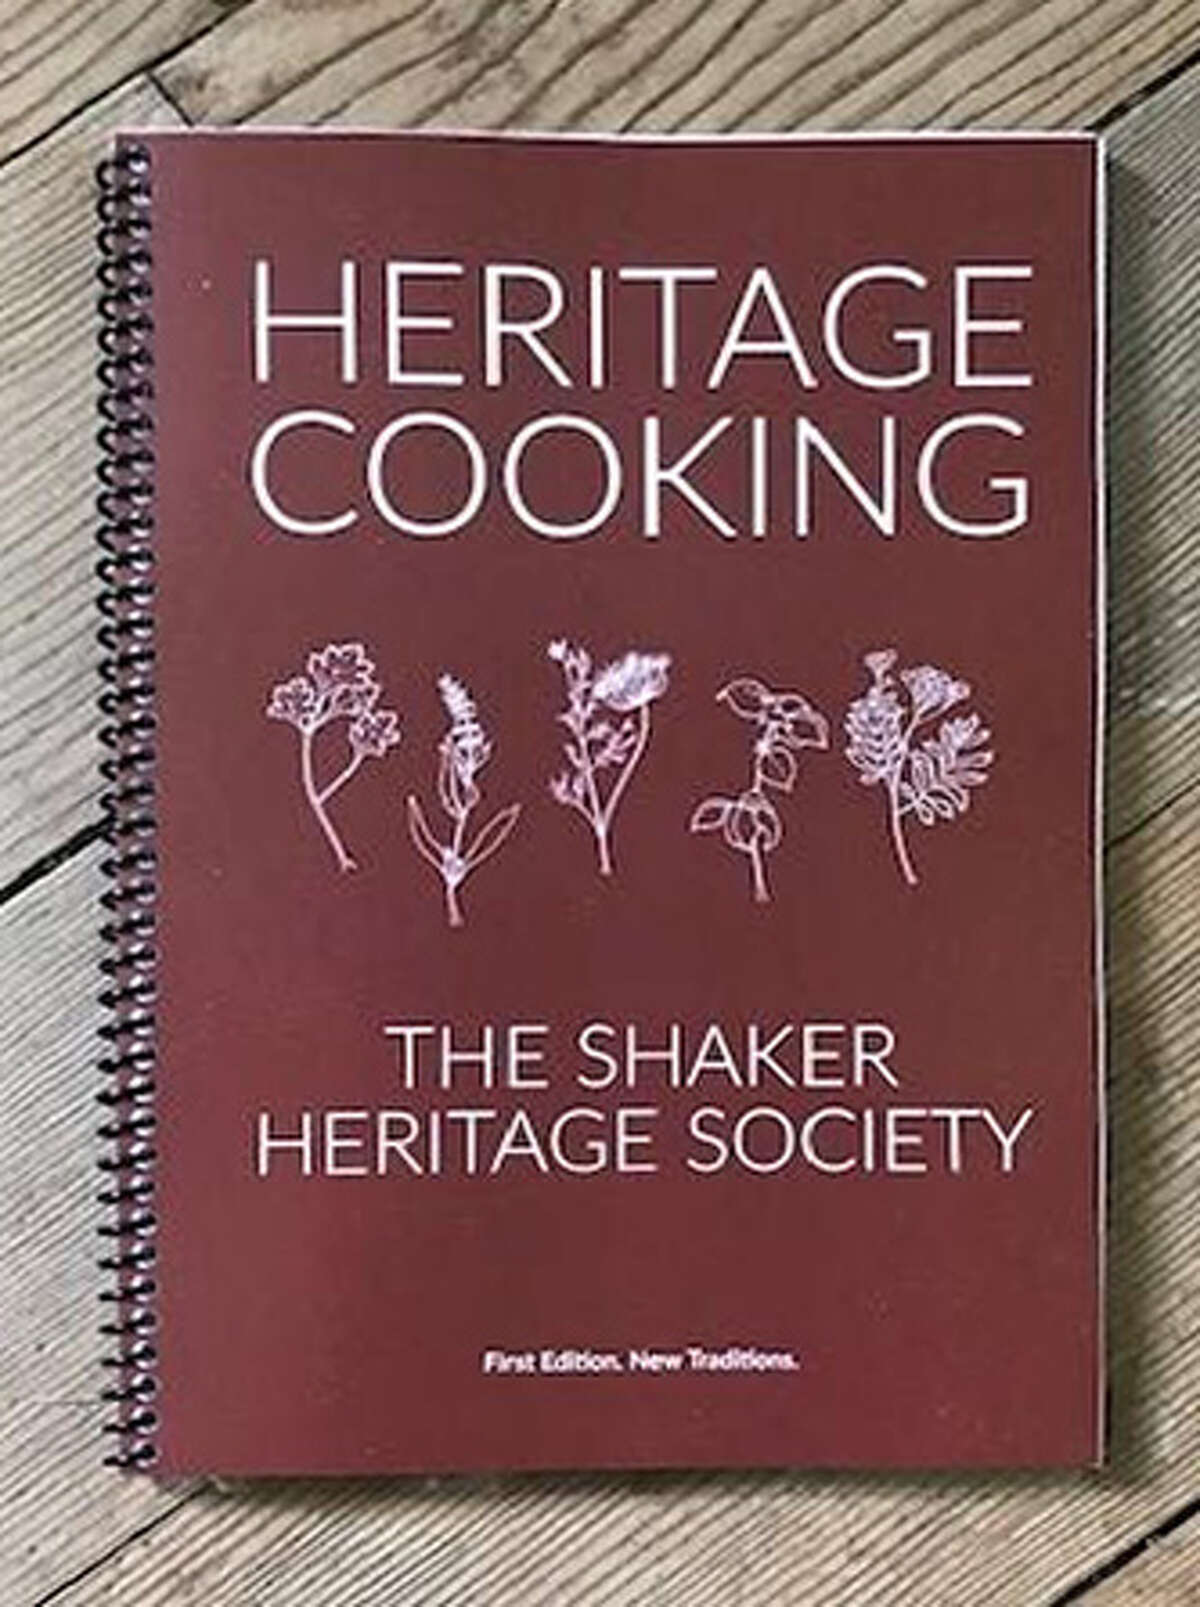 """""""Heritage Cooking,"""" a cookbook published by the Shaker Heritage Society in Latham, collects family recipes and related stories from Capital Region contributors. It will be launched at an event at the Shaker Heritage Site in Latham on Oct. 2, 2021."""